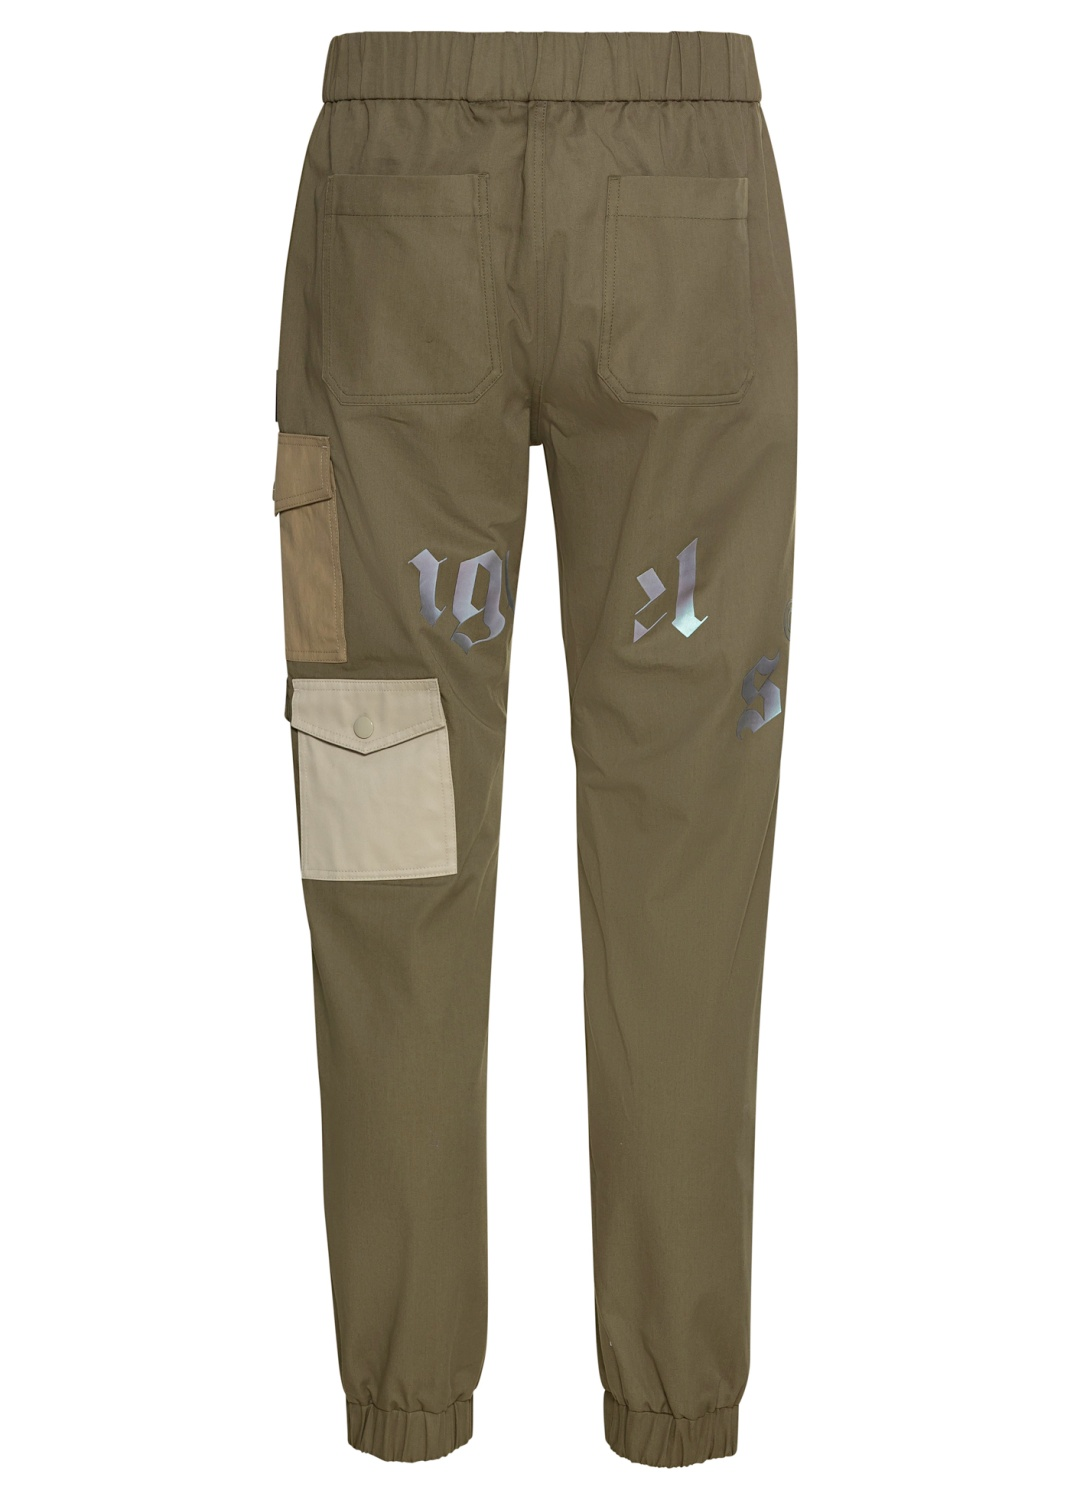 MILITARY CARGO PANTS image number 1